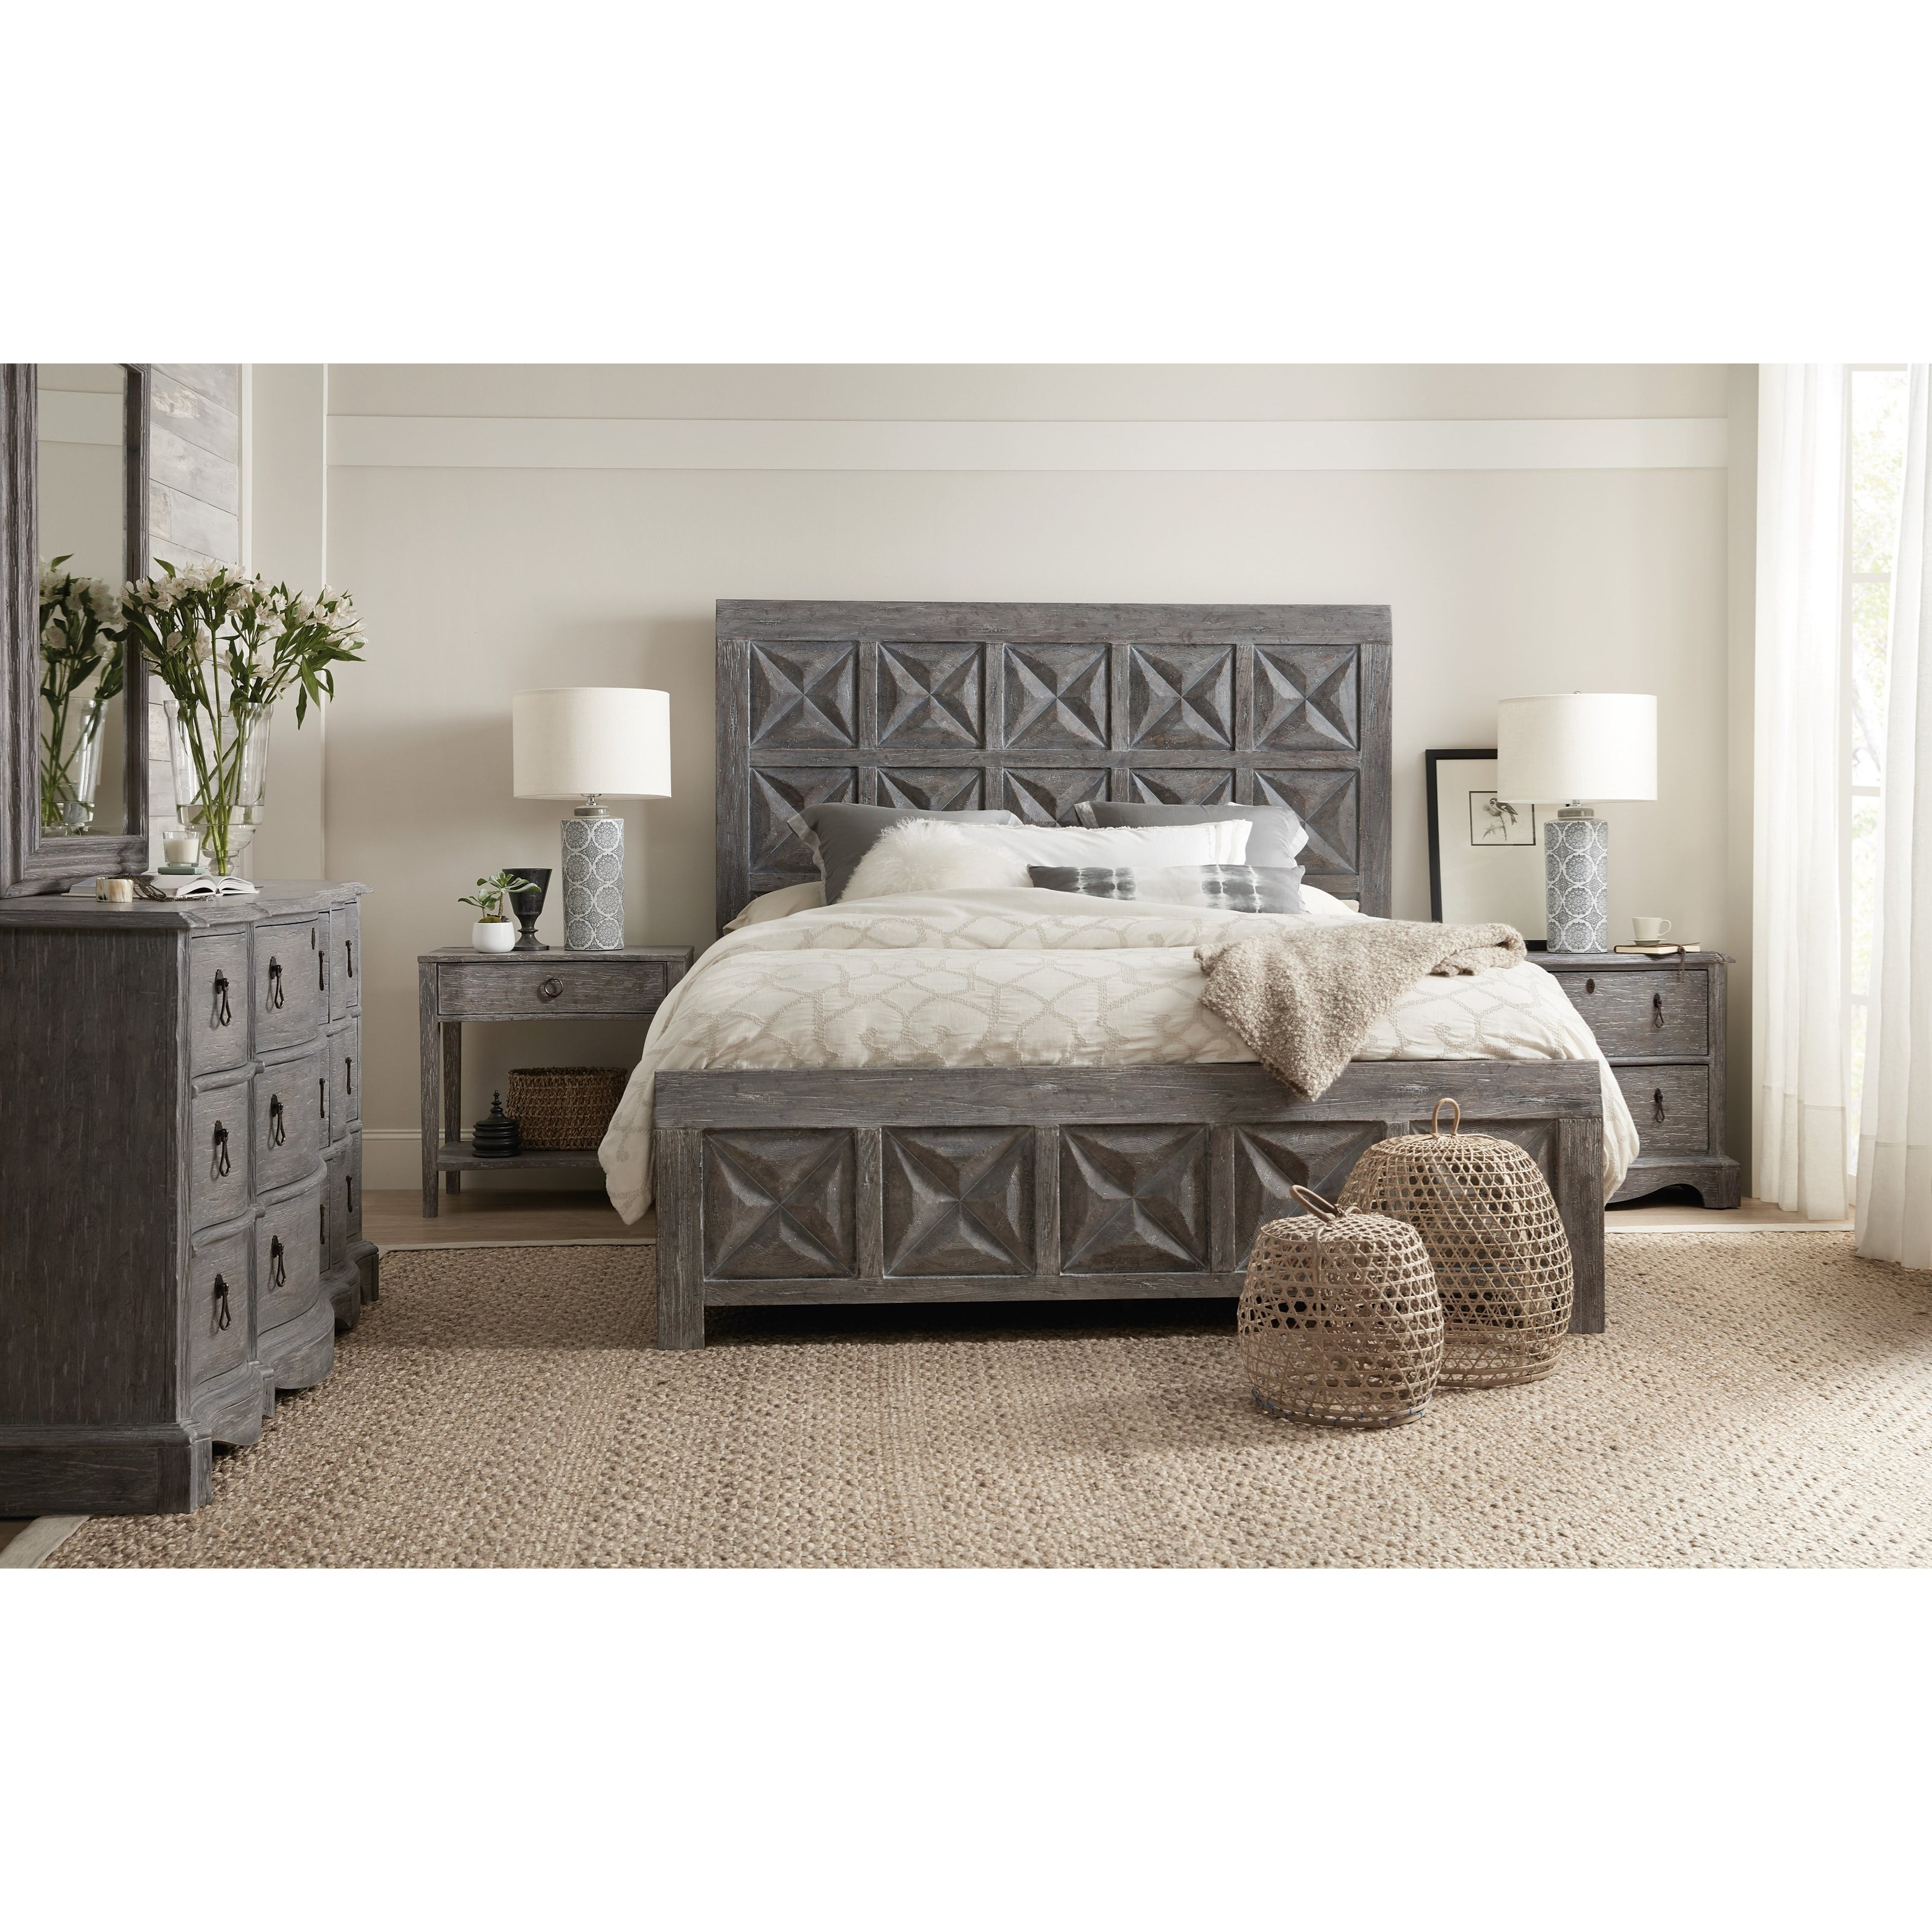 Beaumont California King Bedroom Group by Hooker Furniture at Alison Craig Home Furnishings